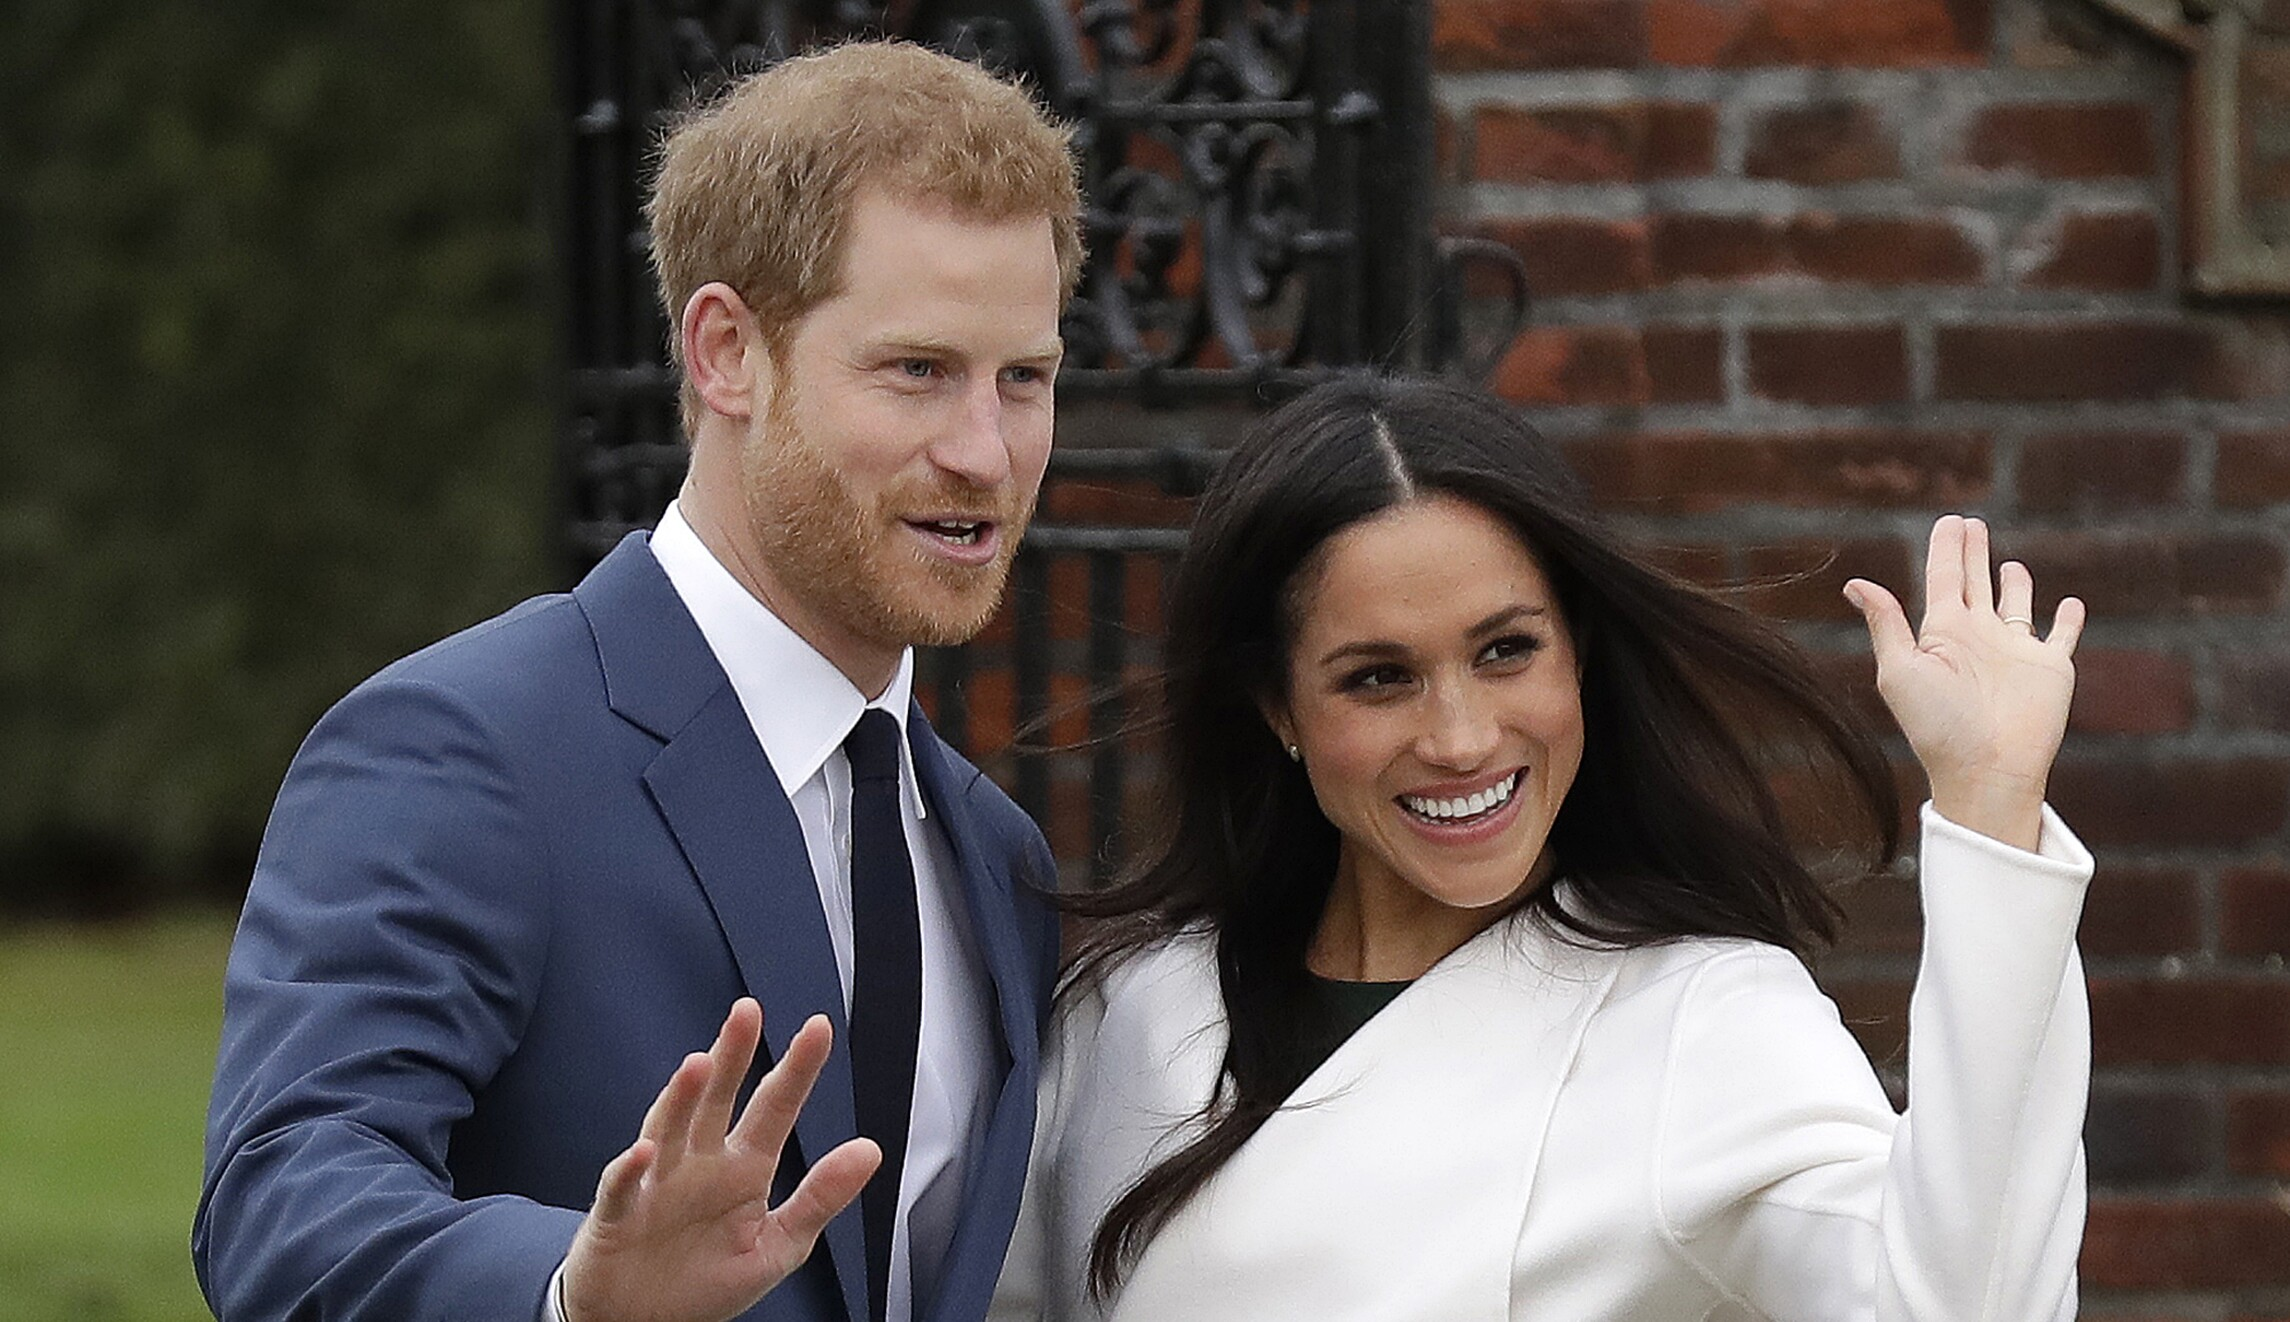 Prince Harry Wedding.Why Prince Harry Is Getting Married The Same Day As Britain S Super Bowl